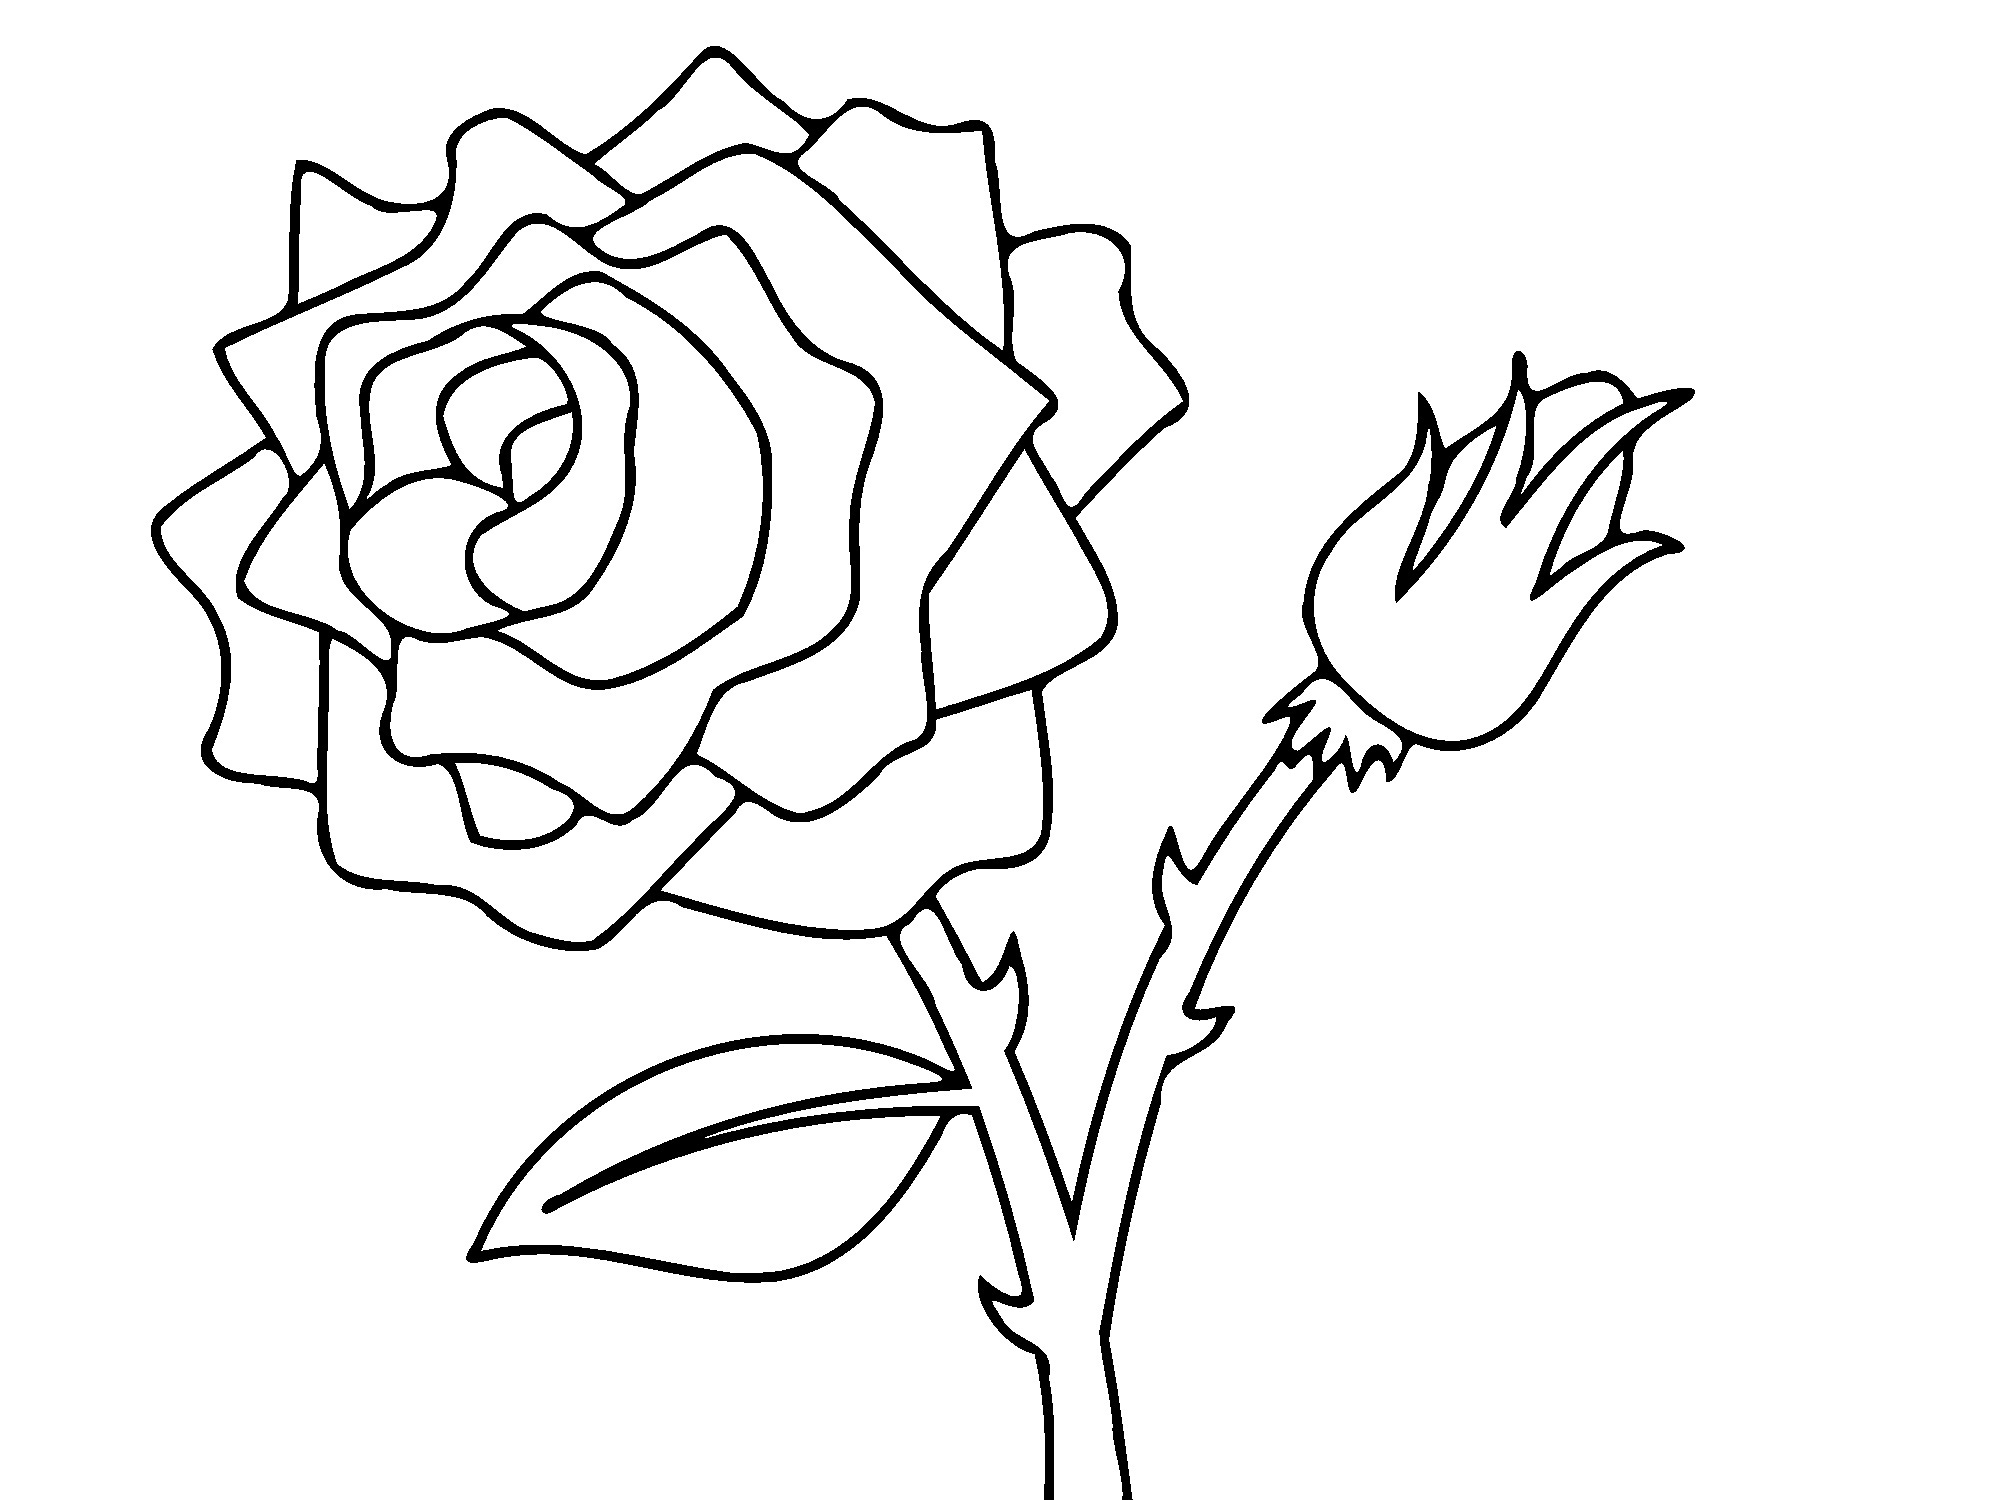 rose coloring book page free roses printable adult coloring page the graphics fairy coloring page book rose